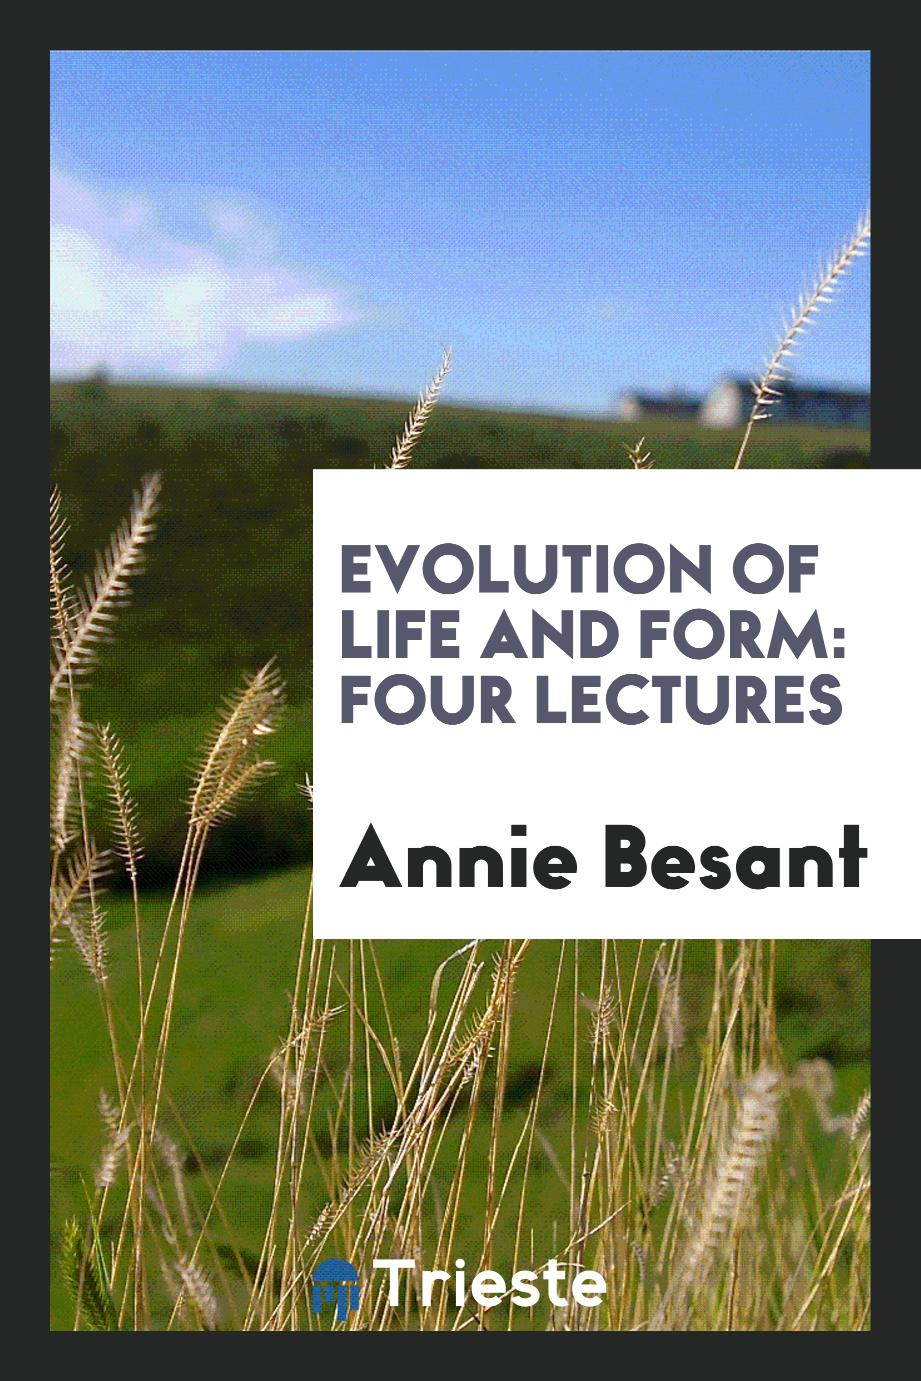 Evolution of Life and Form: Four Lectures